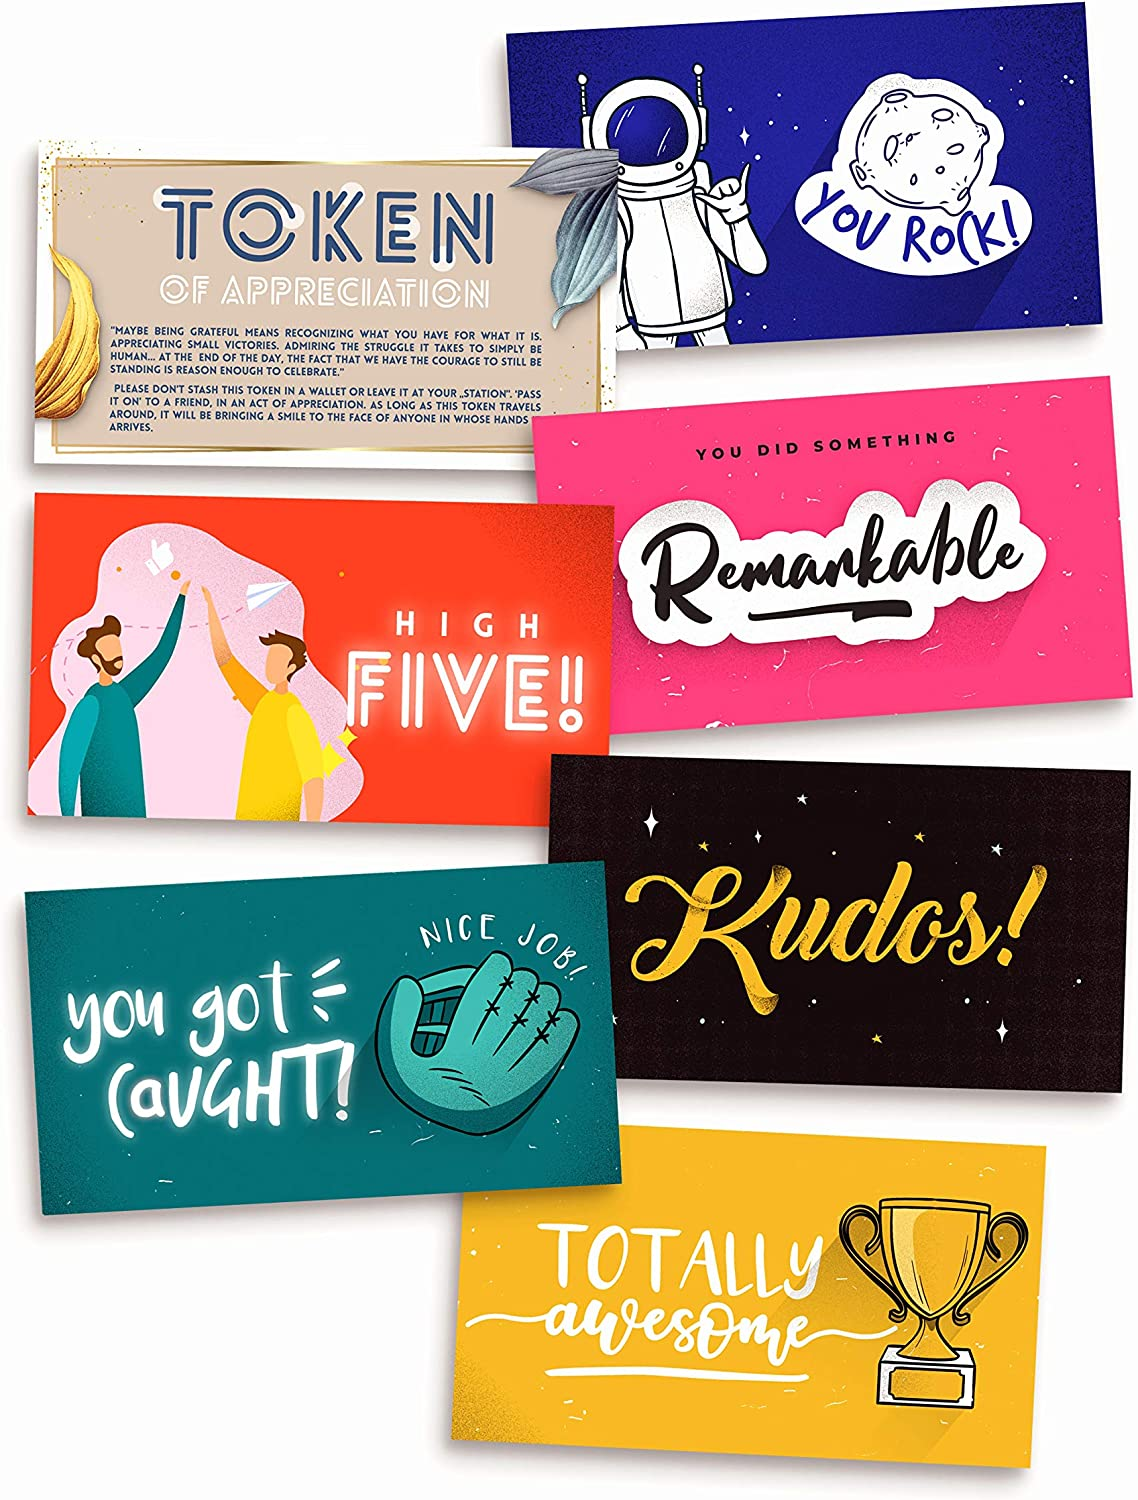 Kudos - Thank You Appreciation Gift Cards – Employee Recognition Reward with Motivational Quote for Team, Staff, Coworkers, Teachers - (70/Set)